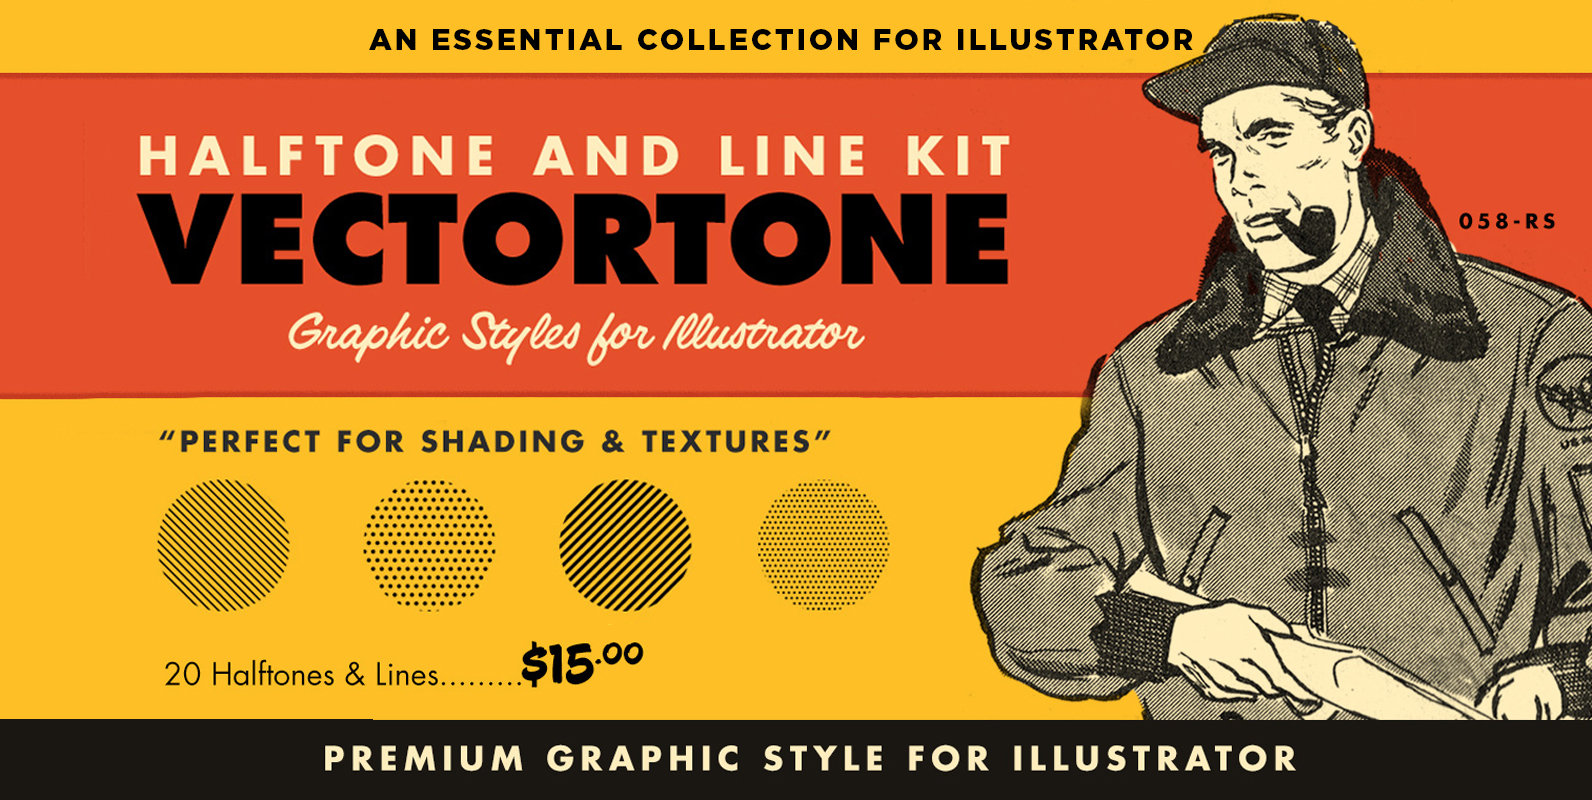 VectorTone  |  Graphic Styles and More